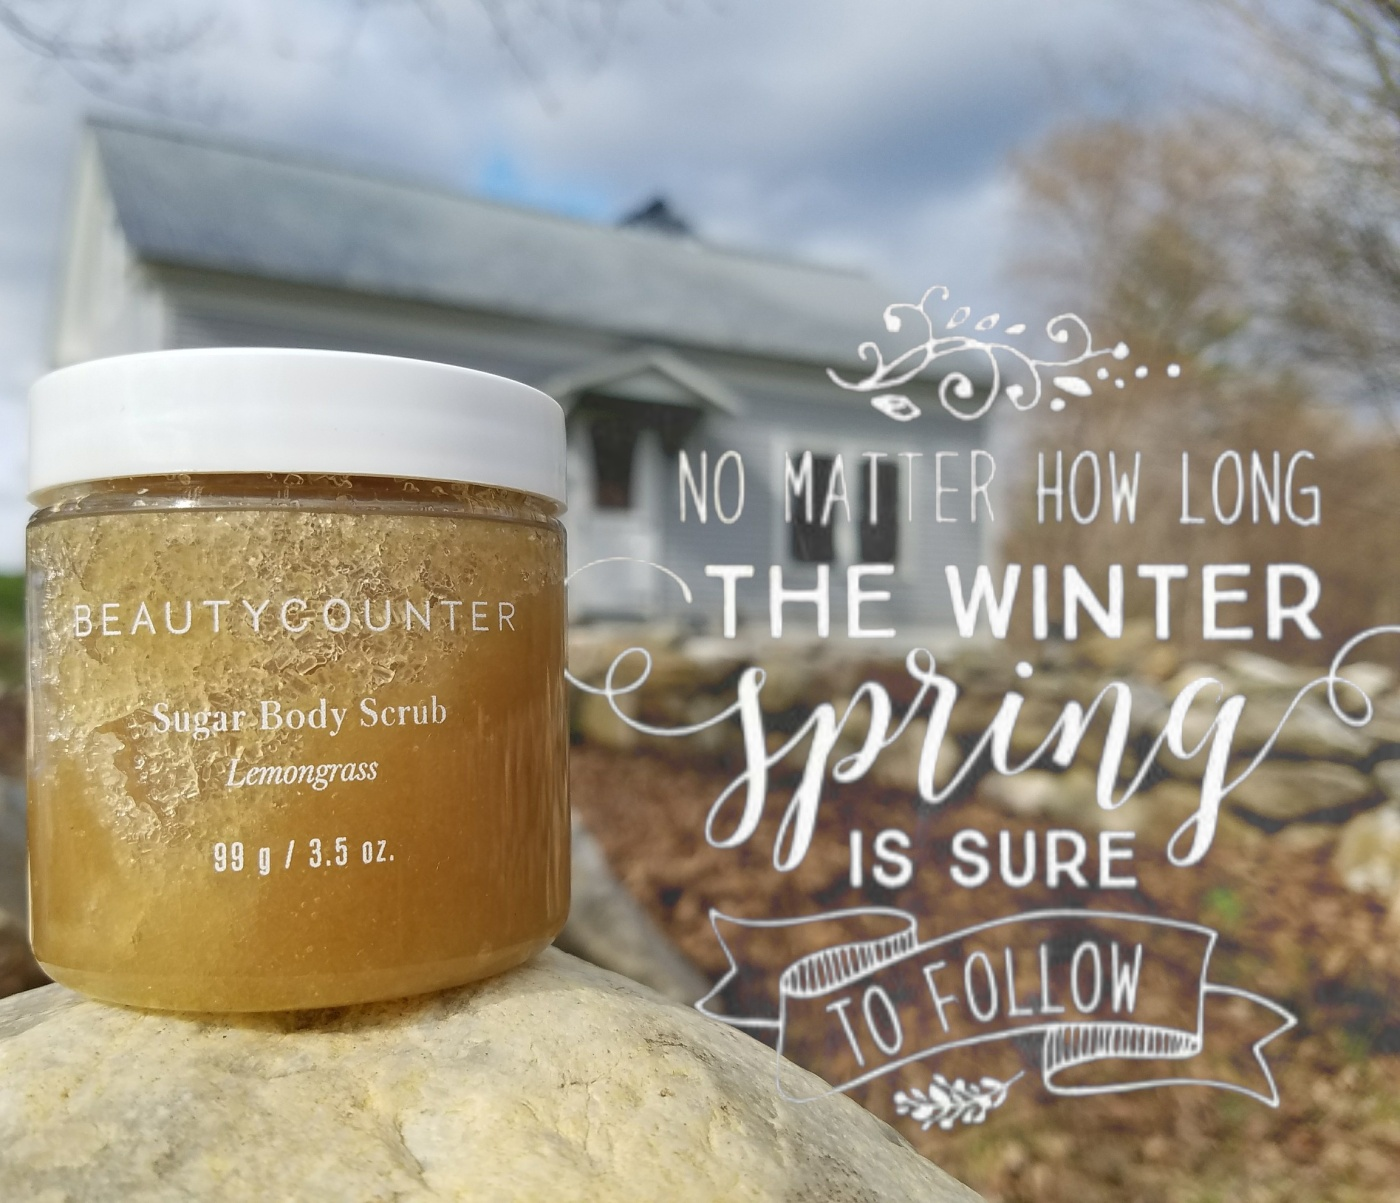 Better Beauty Vermont long winter spring to follow Beautycounter Sugar scrub